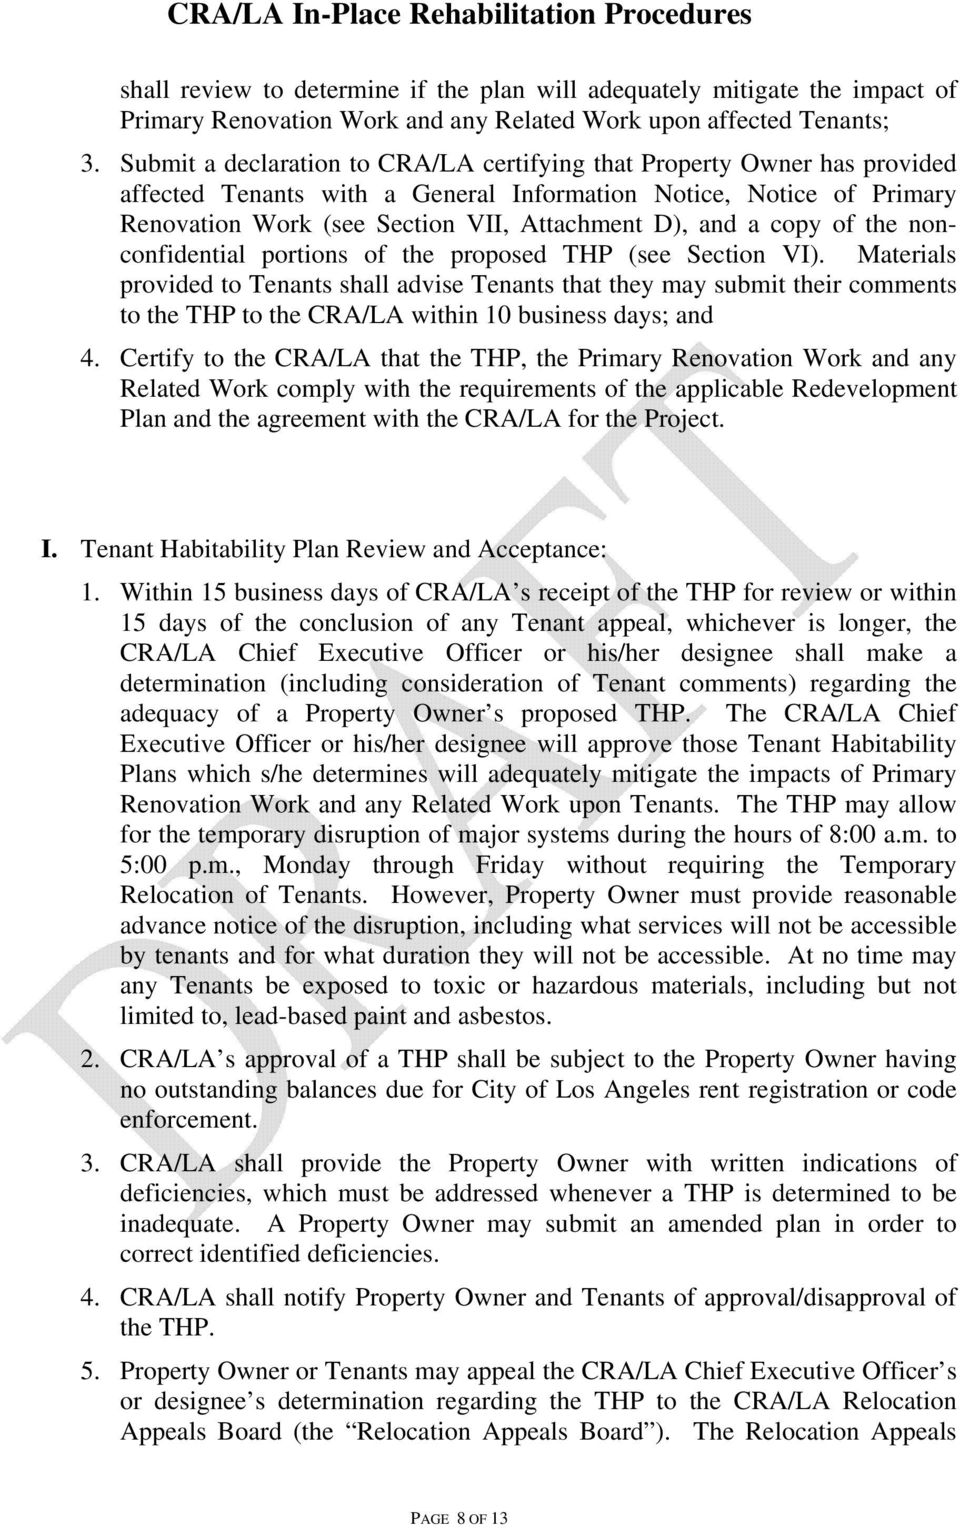 copy of the nonconfidential portions of the proposed THP (see Section VI).